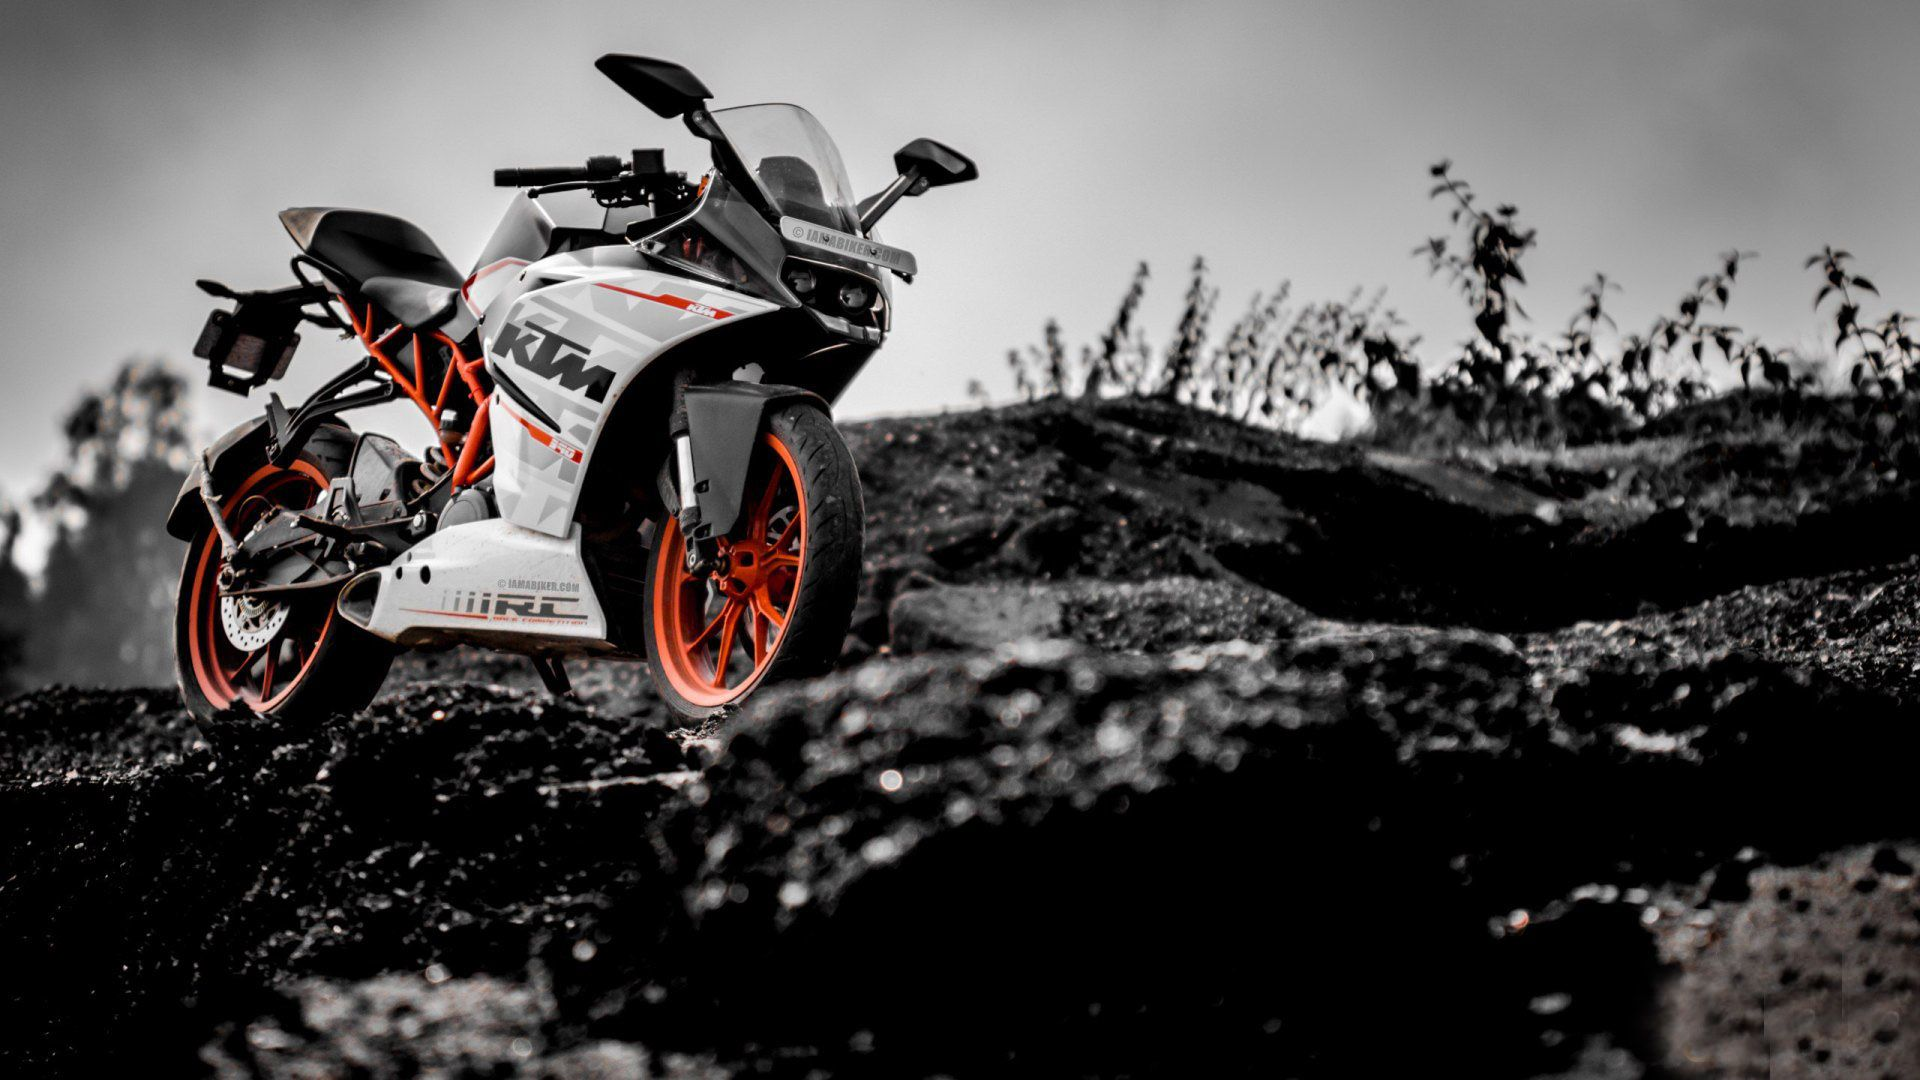 Ktm Rc390 Sport Moto Hd Wallpaper Ktm Rc Ktm Rc 200 Ktm